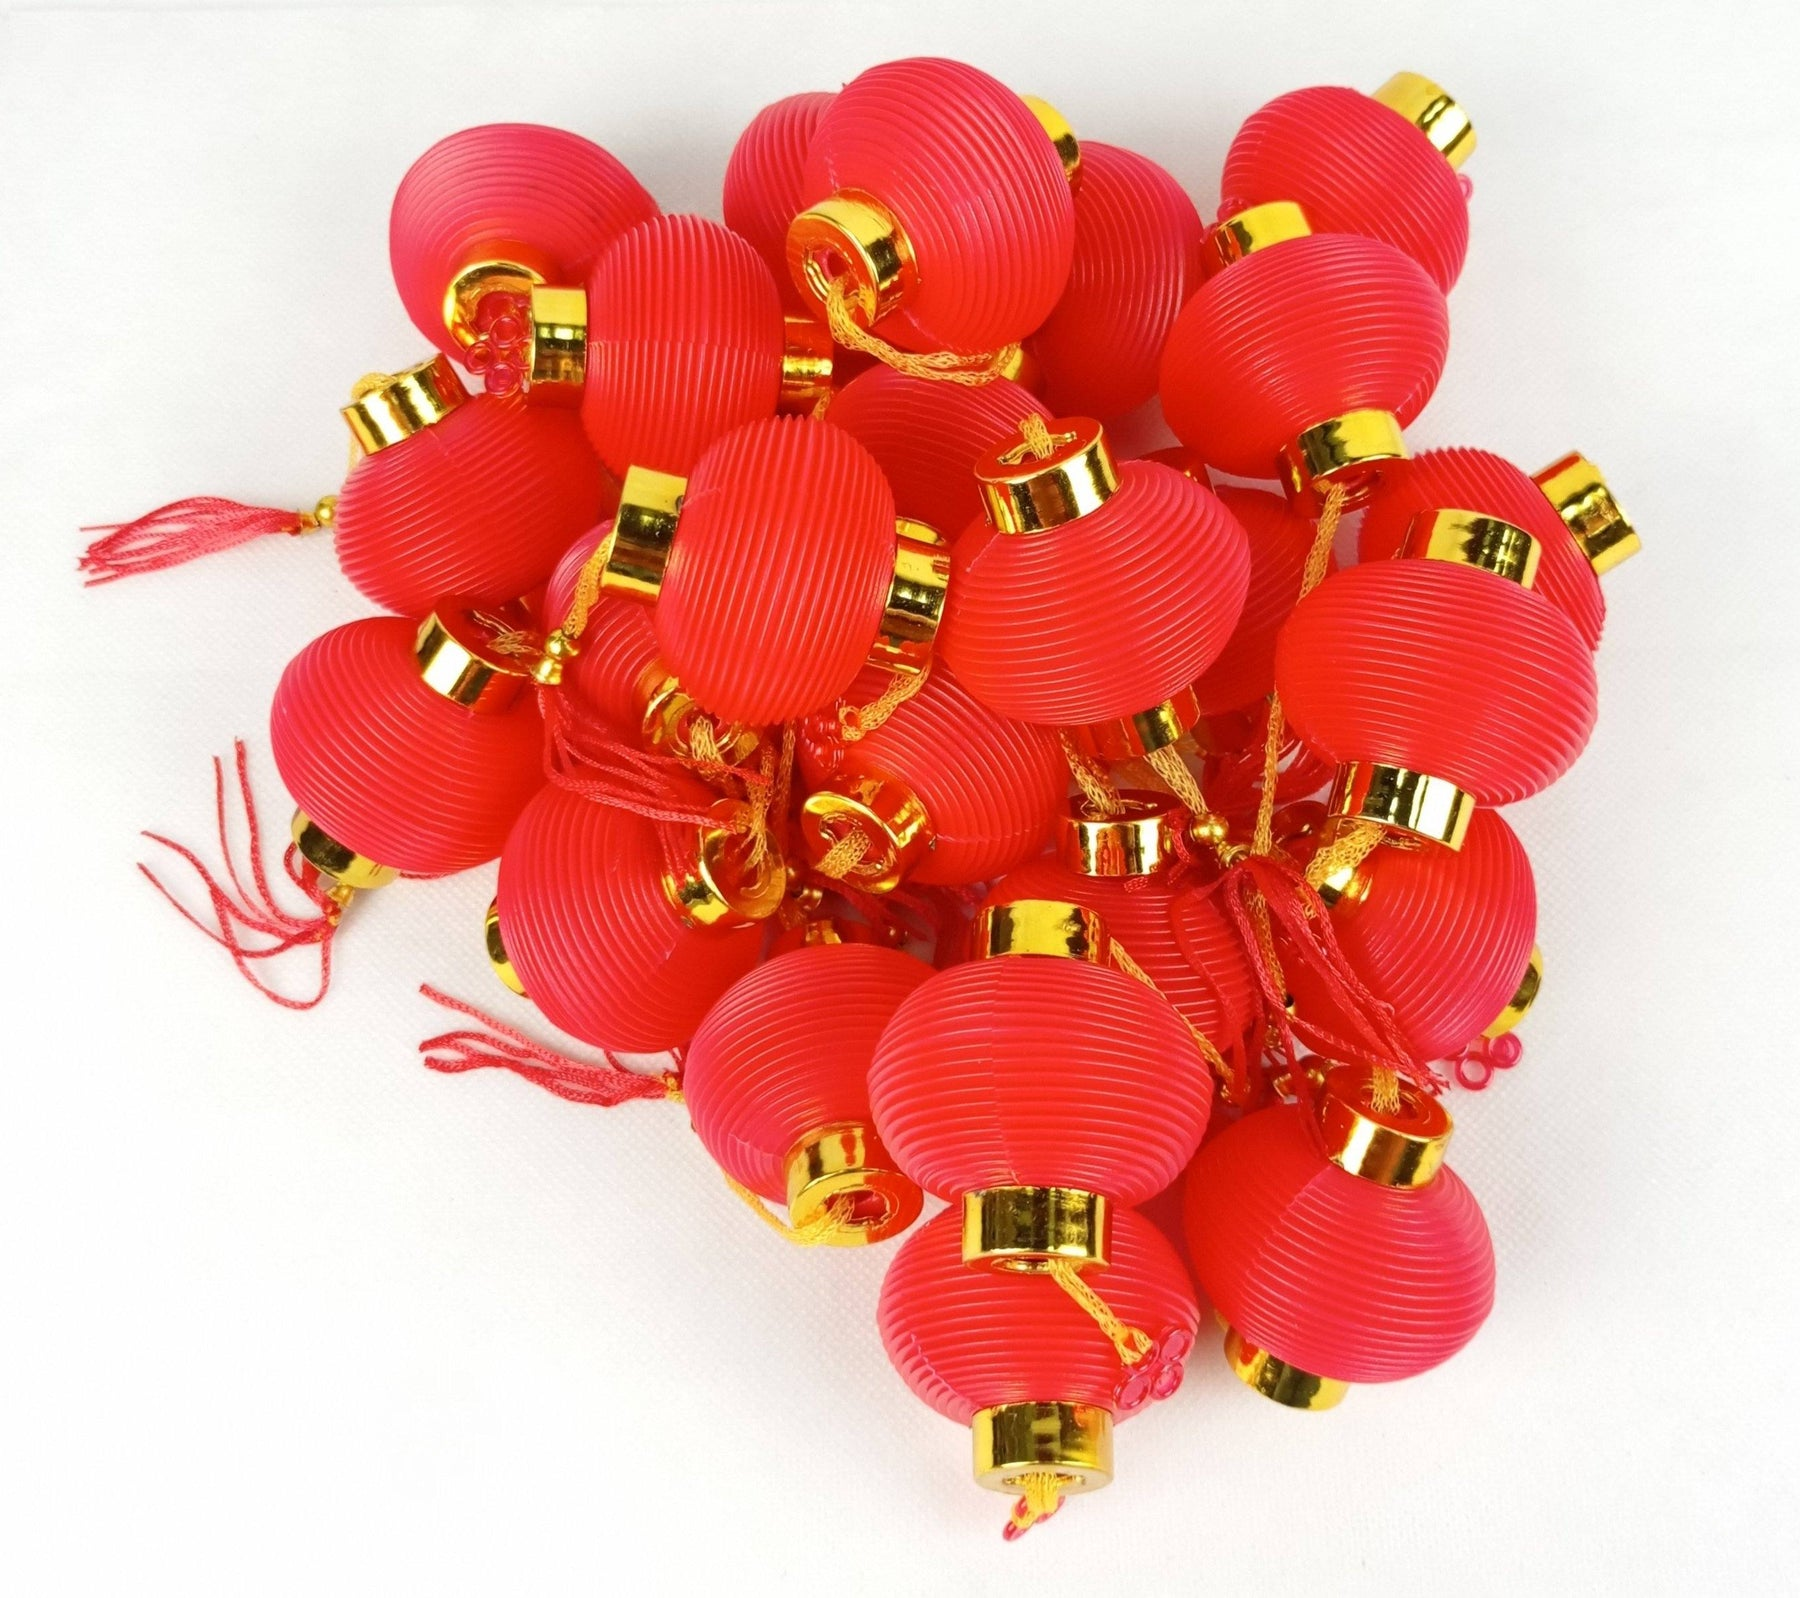 CNY 5cm Ball (Local) - Red